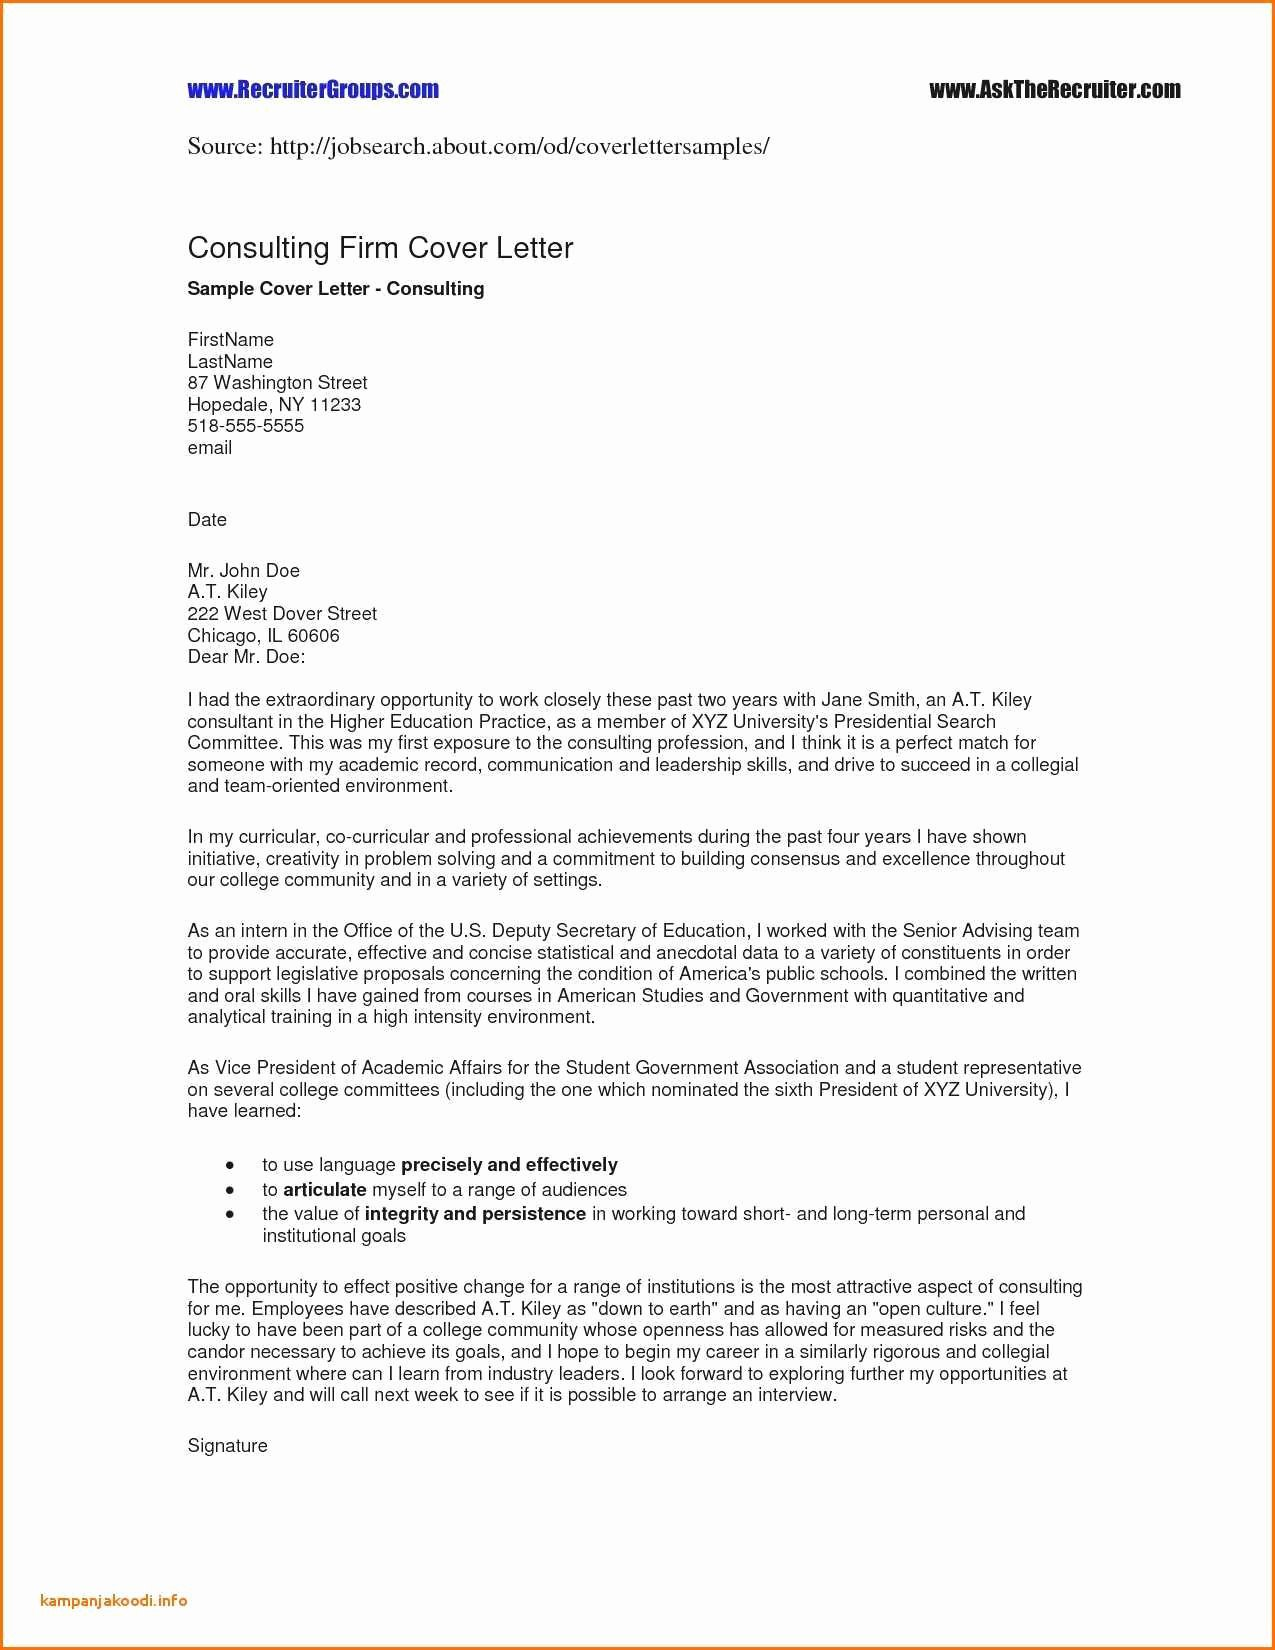 Legally Binding Contract Template New Legally Binding Contract Template Paramythia Docs